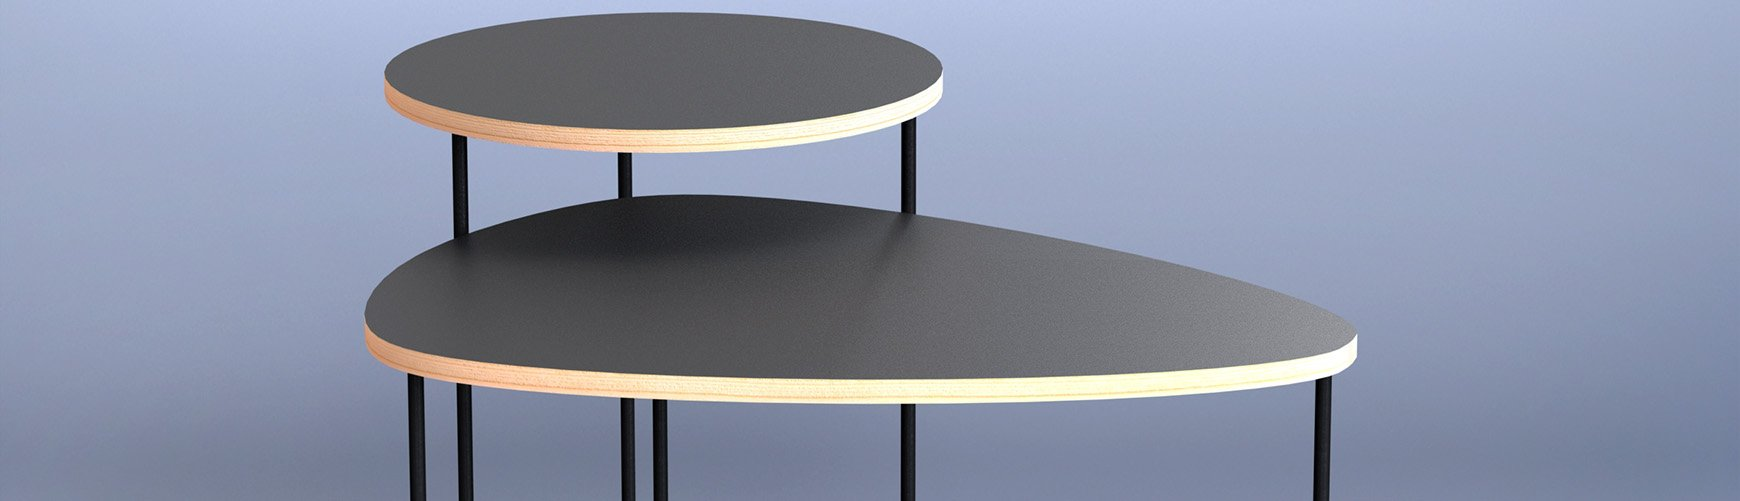 Divi Coffee Table